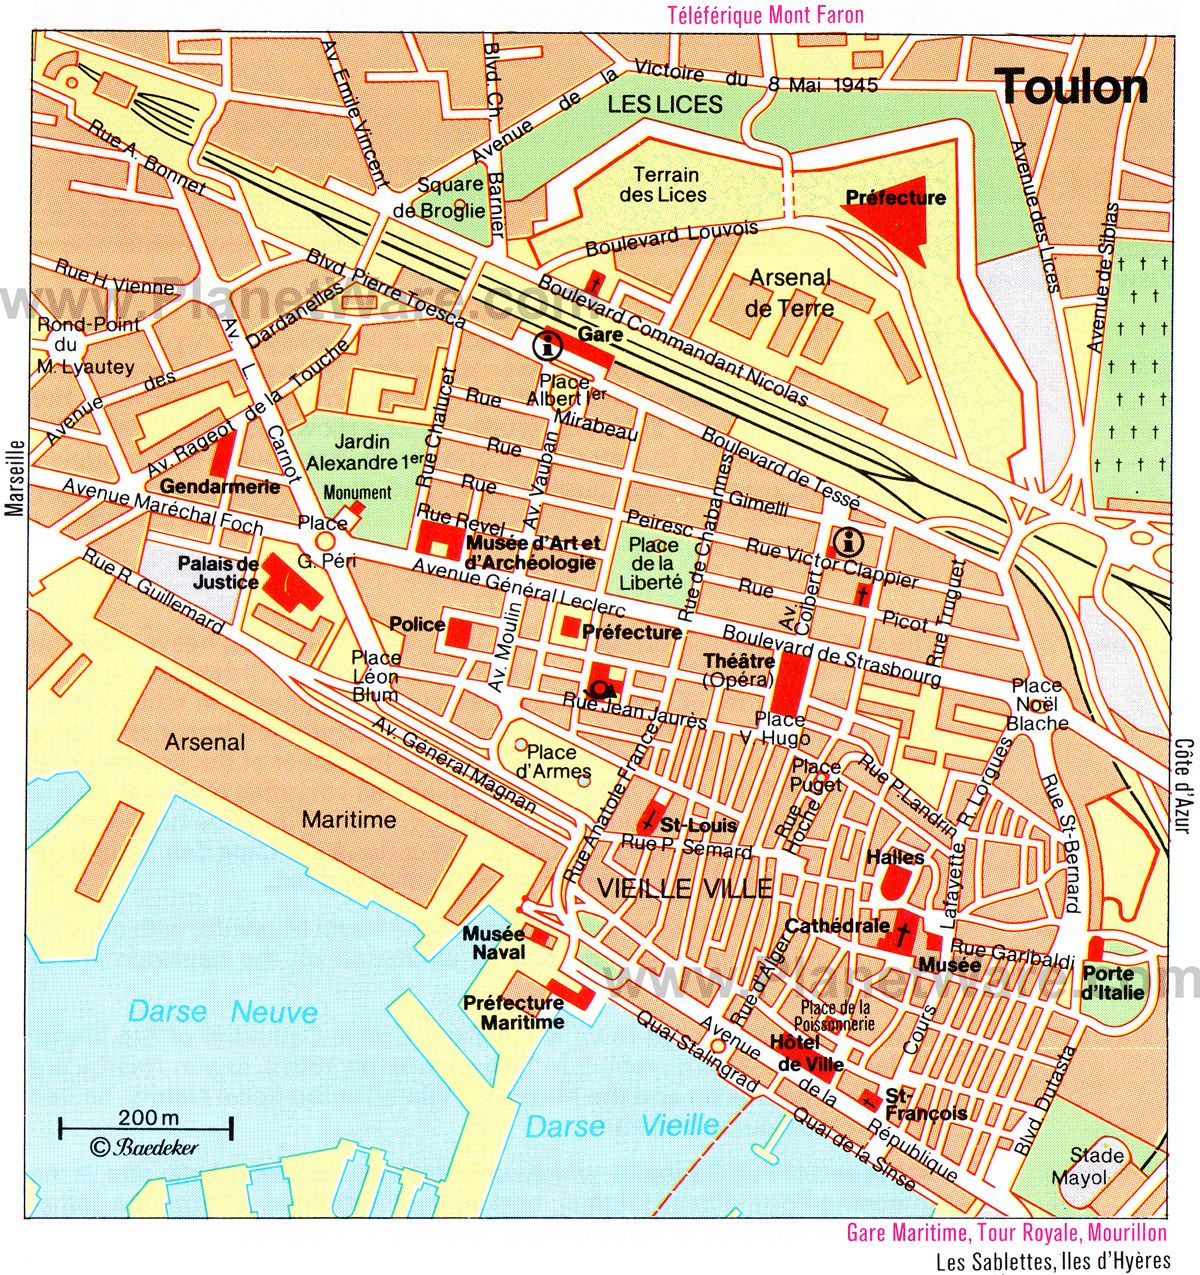 maps to print | Map of Toulon Attractions | PlanetWare ...